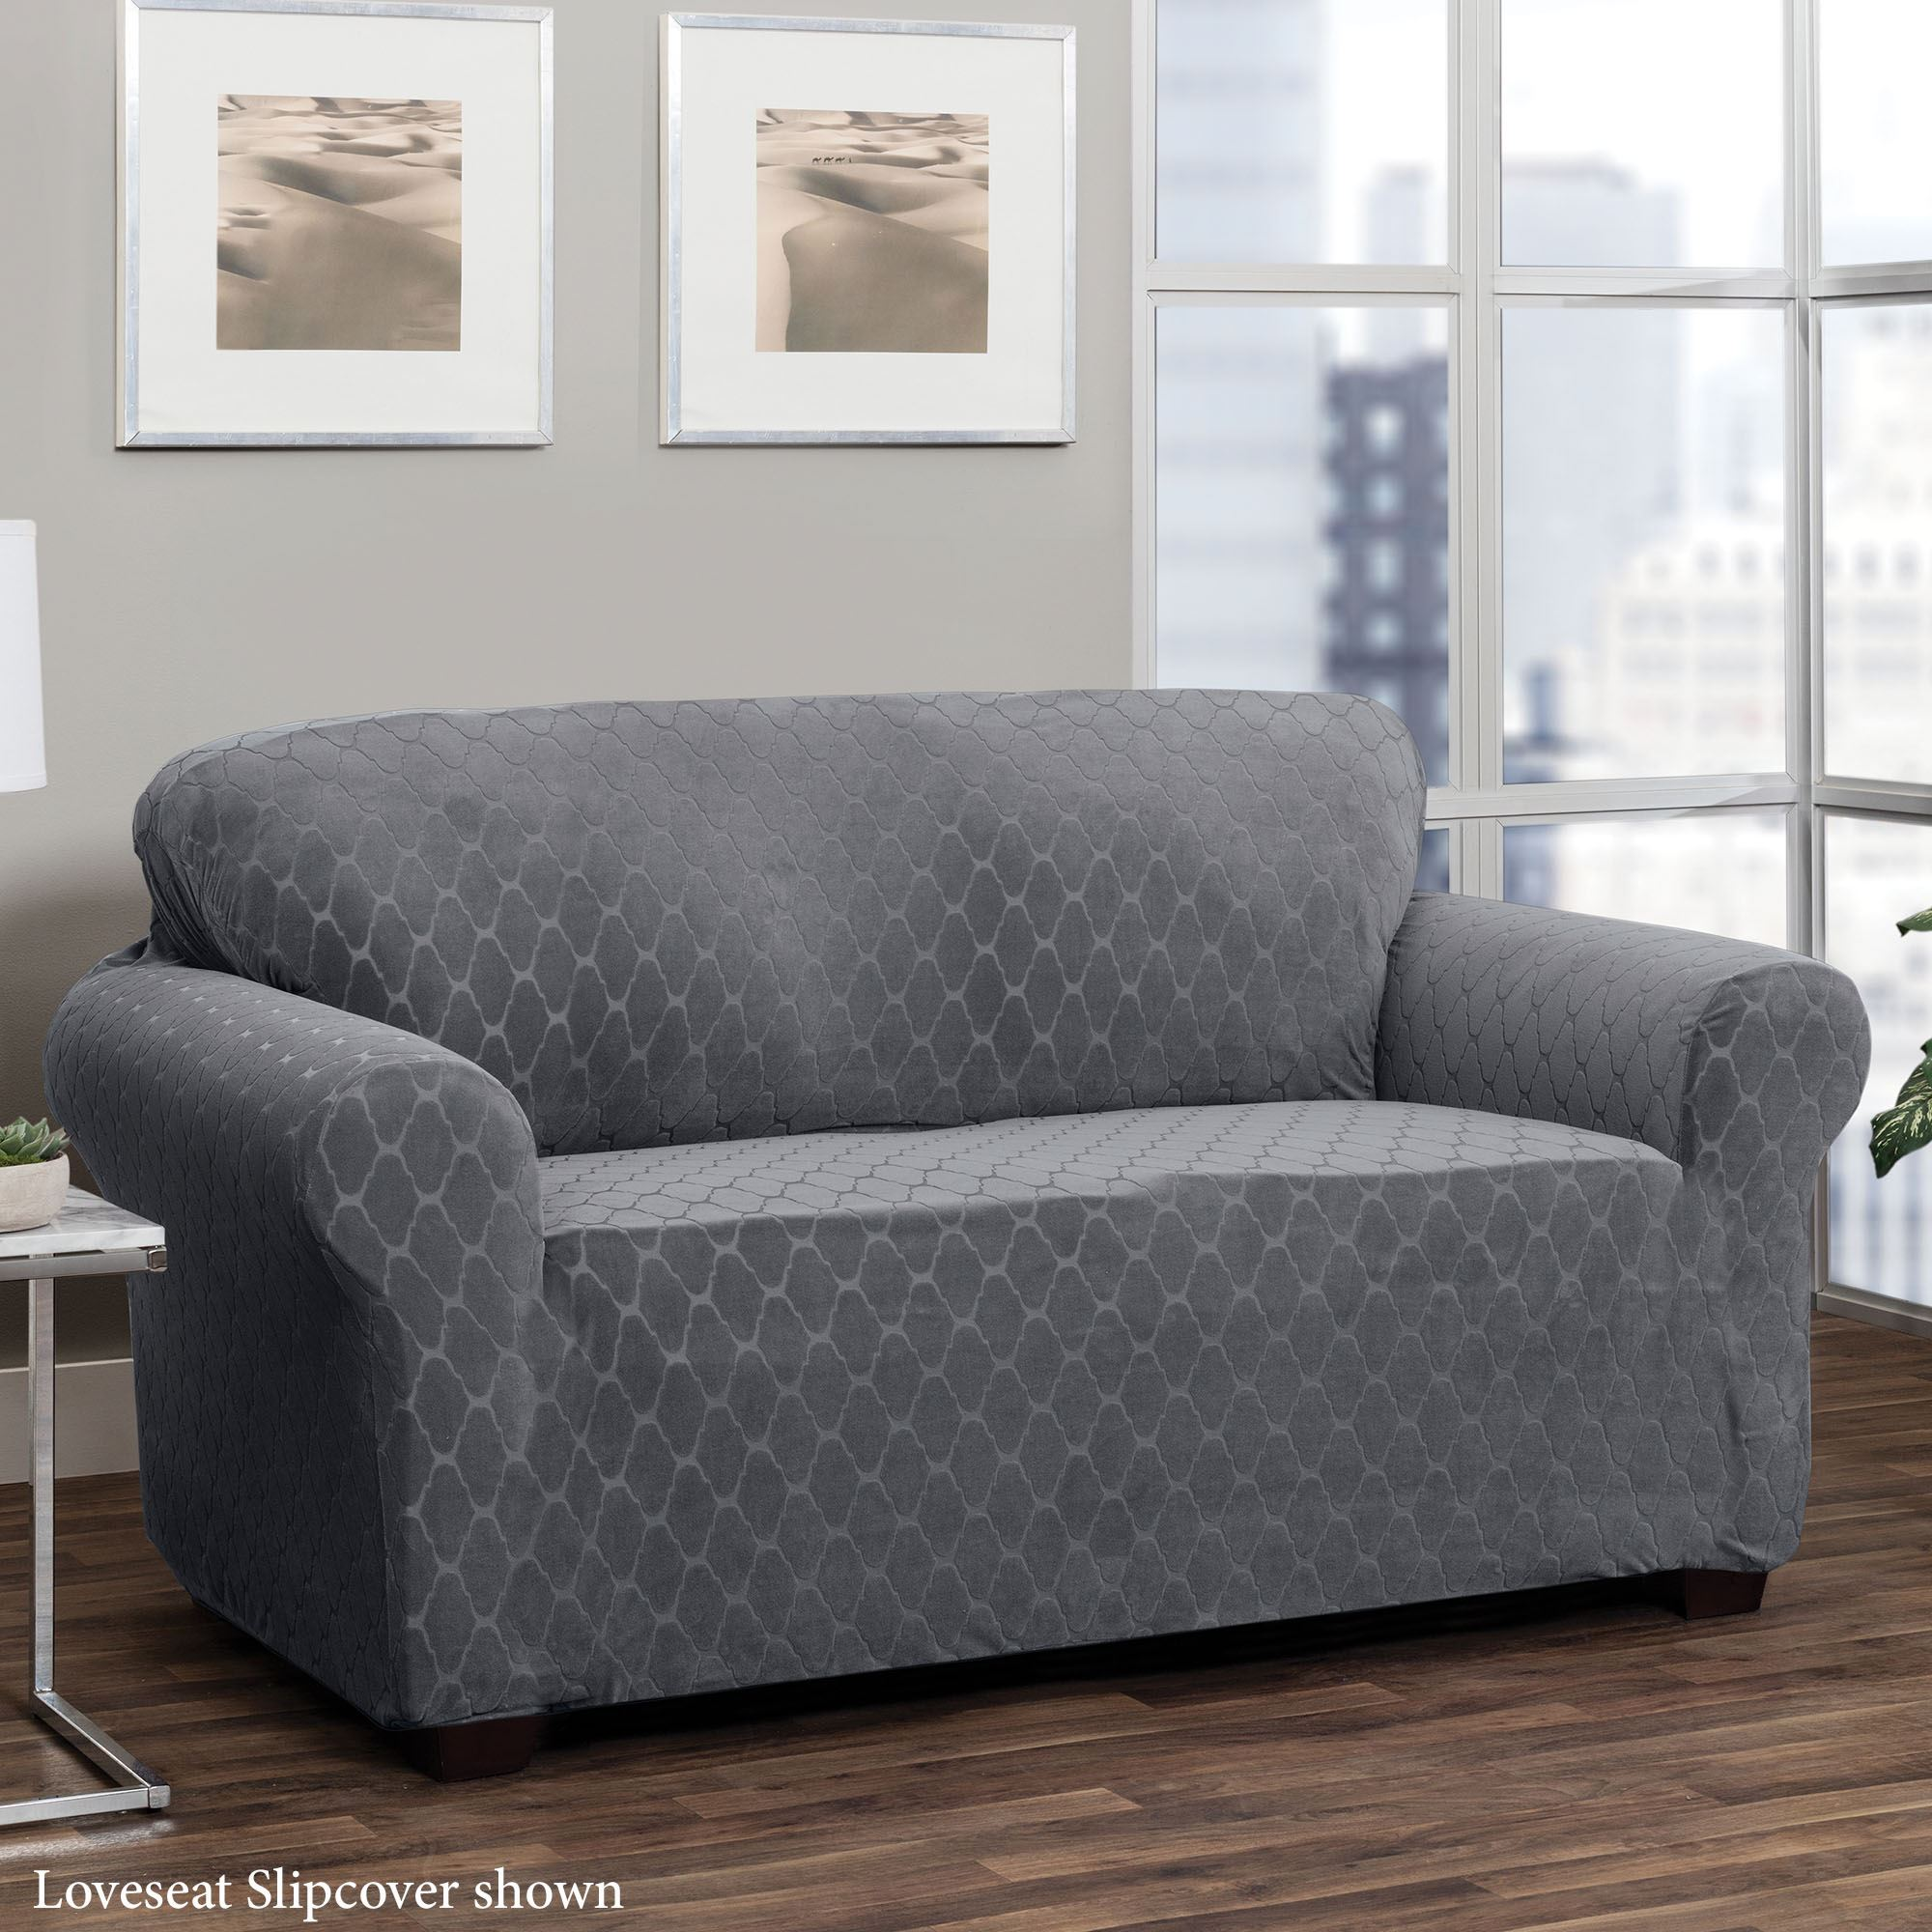 Peachy Helix Dark Gray Stretch Furniture Slipcovers Forskolin Free Trial Chair Design Images Forskolin Free Trialorg